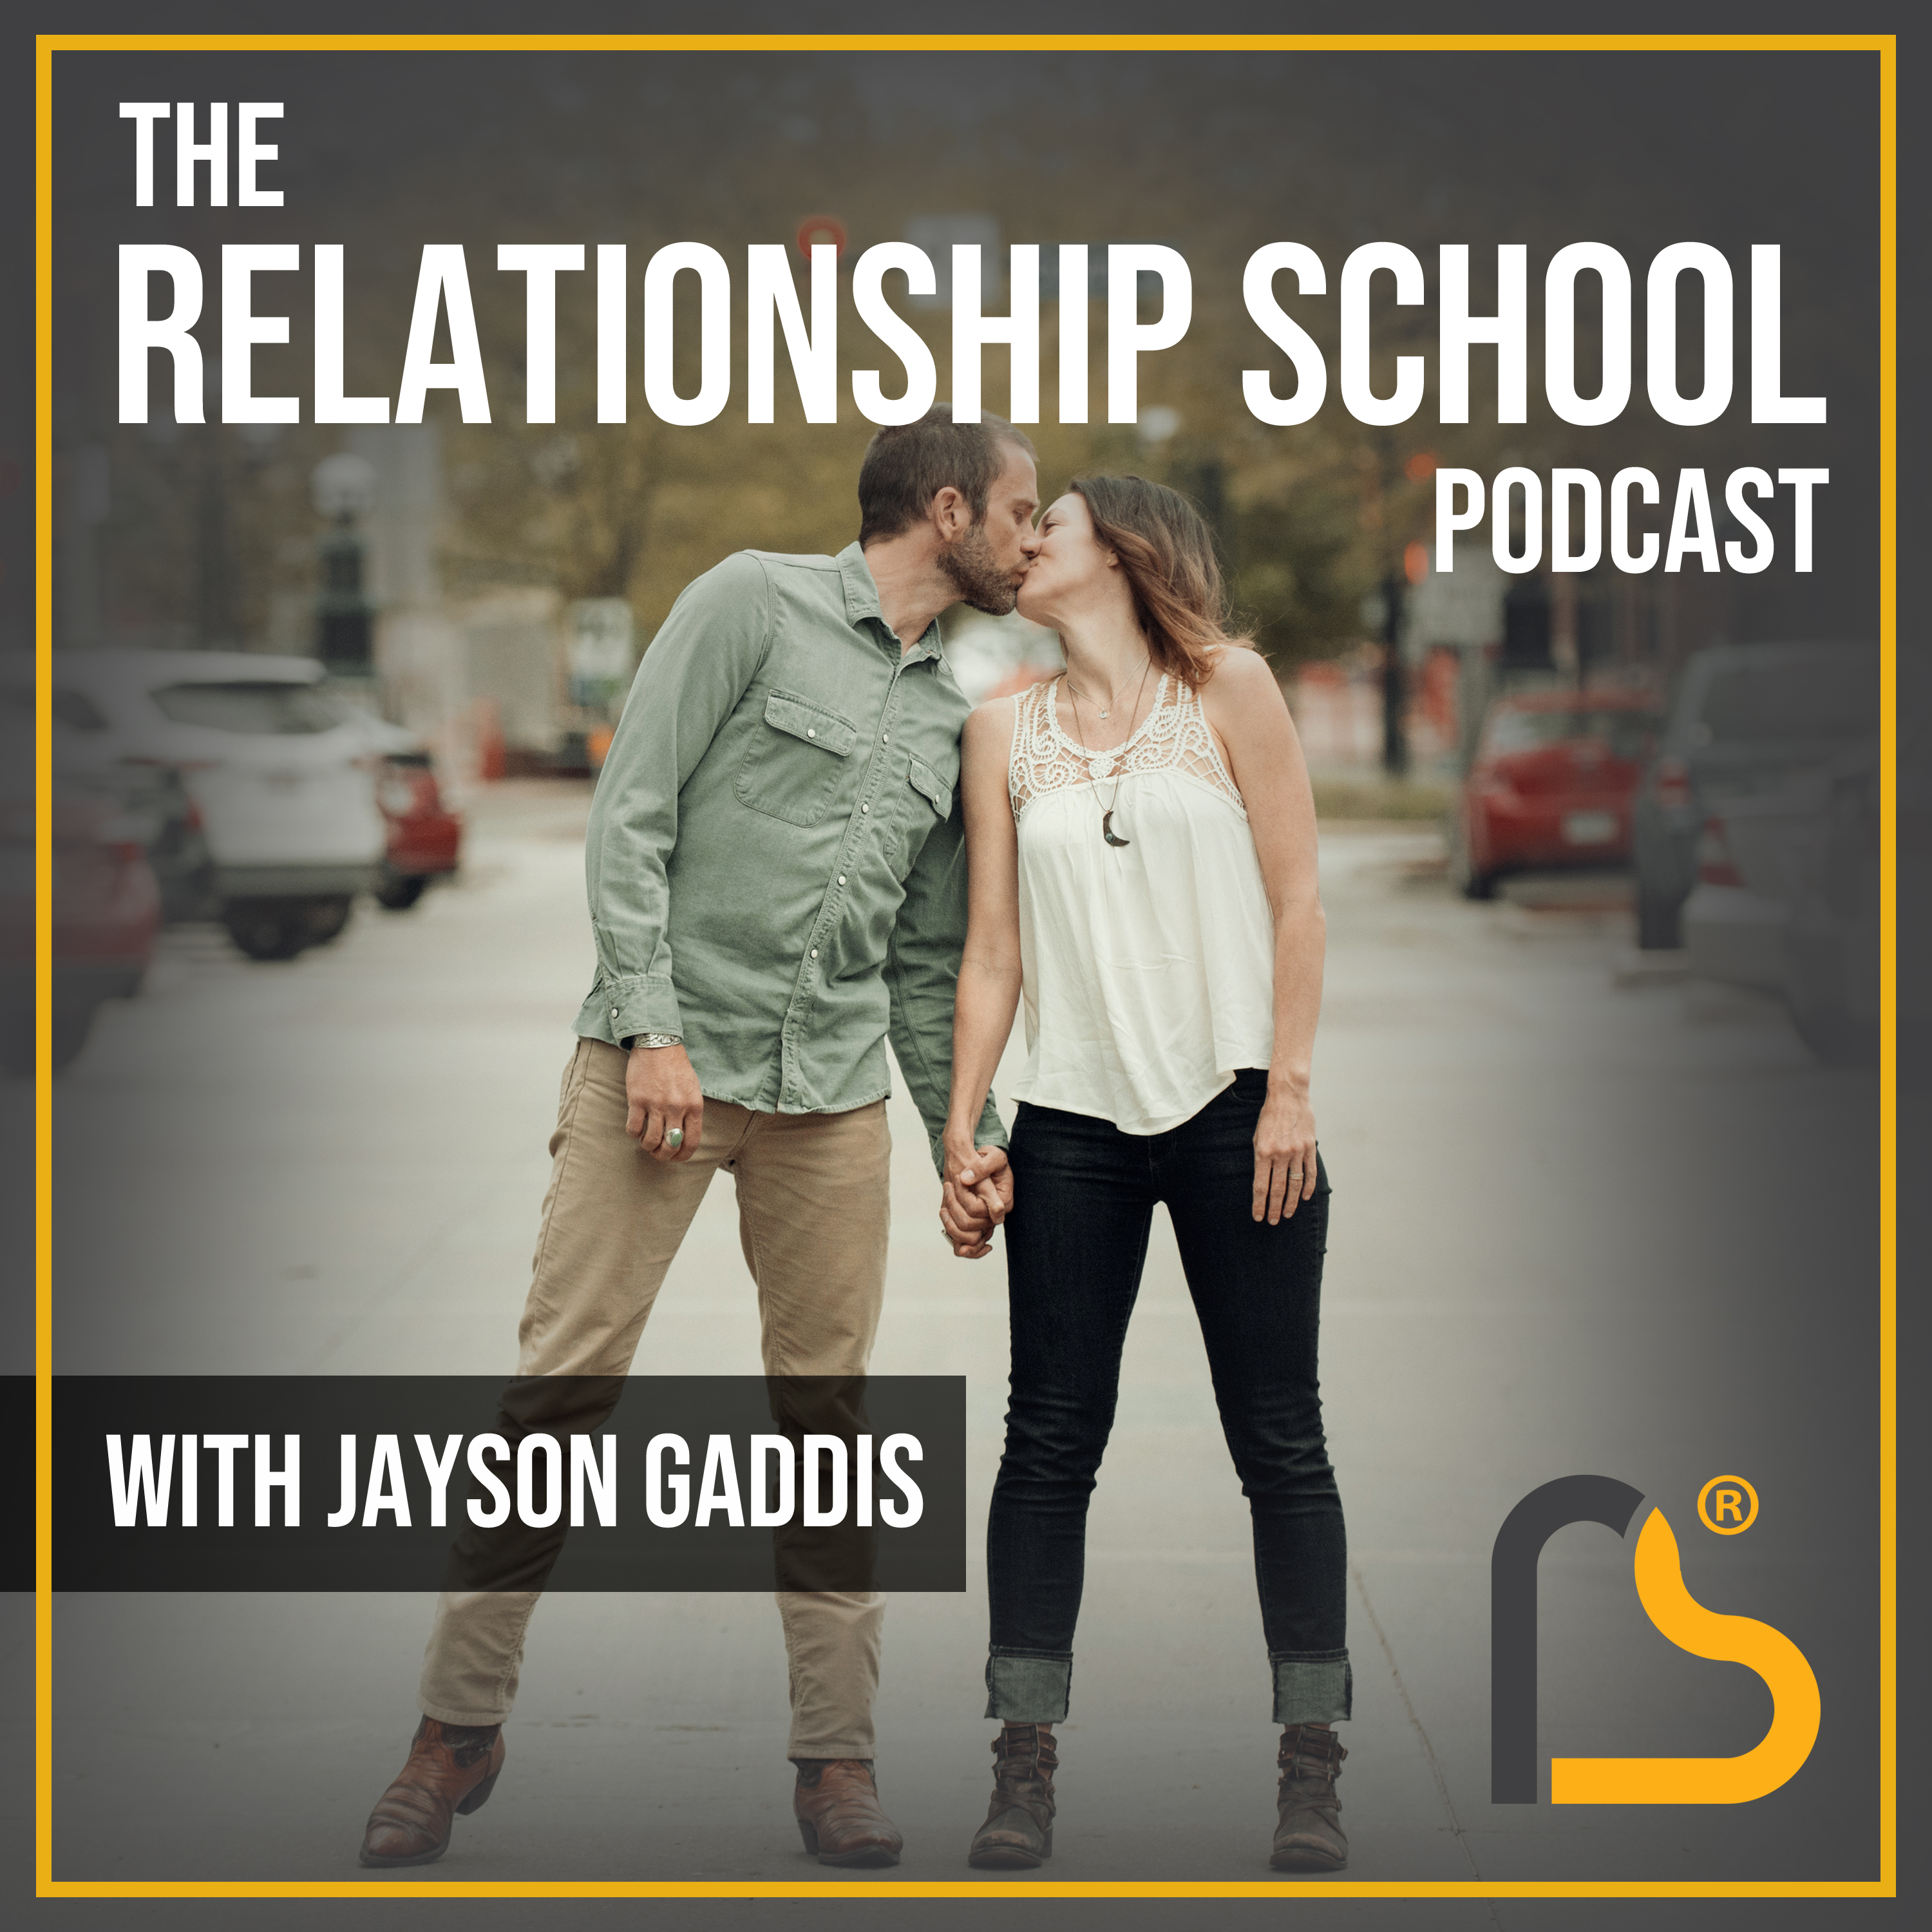 The Relationship School Podcast - Masculine And Feminine Energy In Relationships